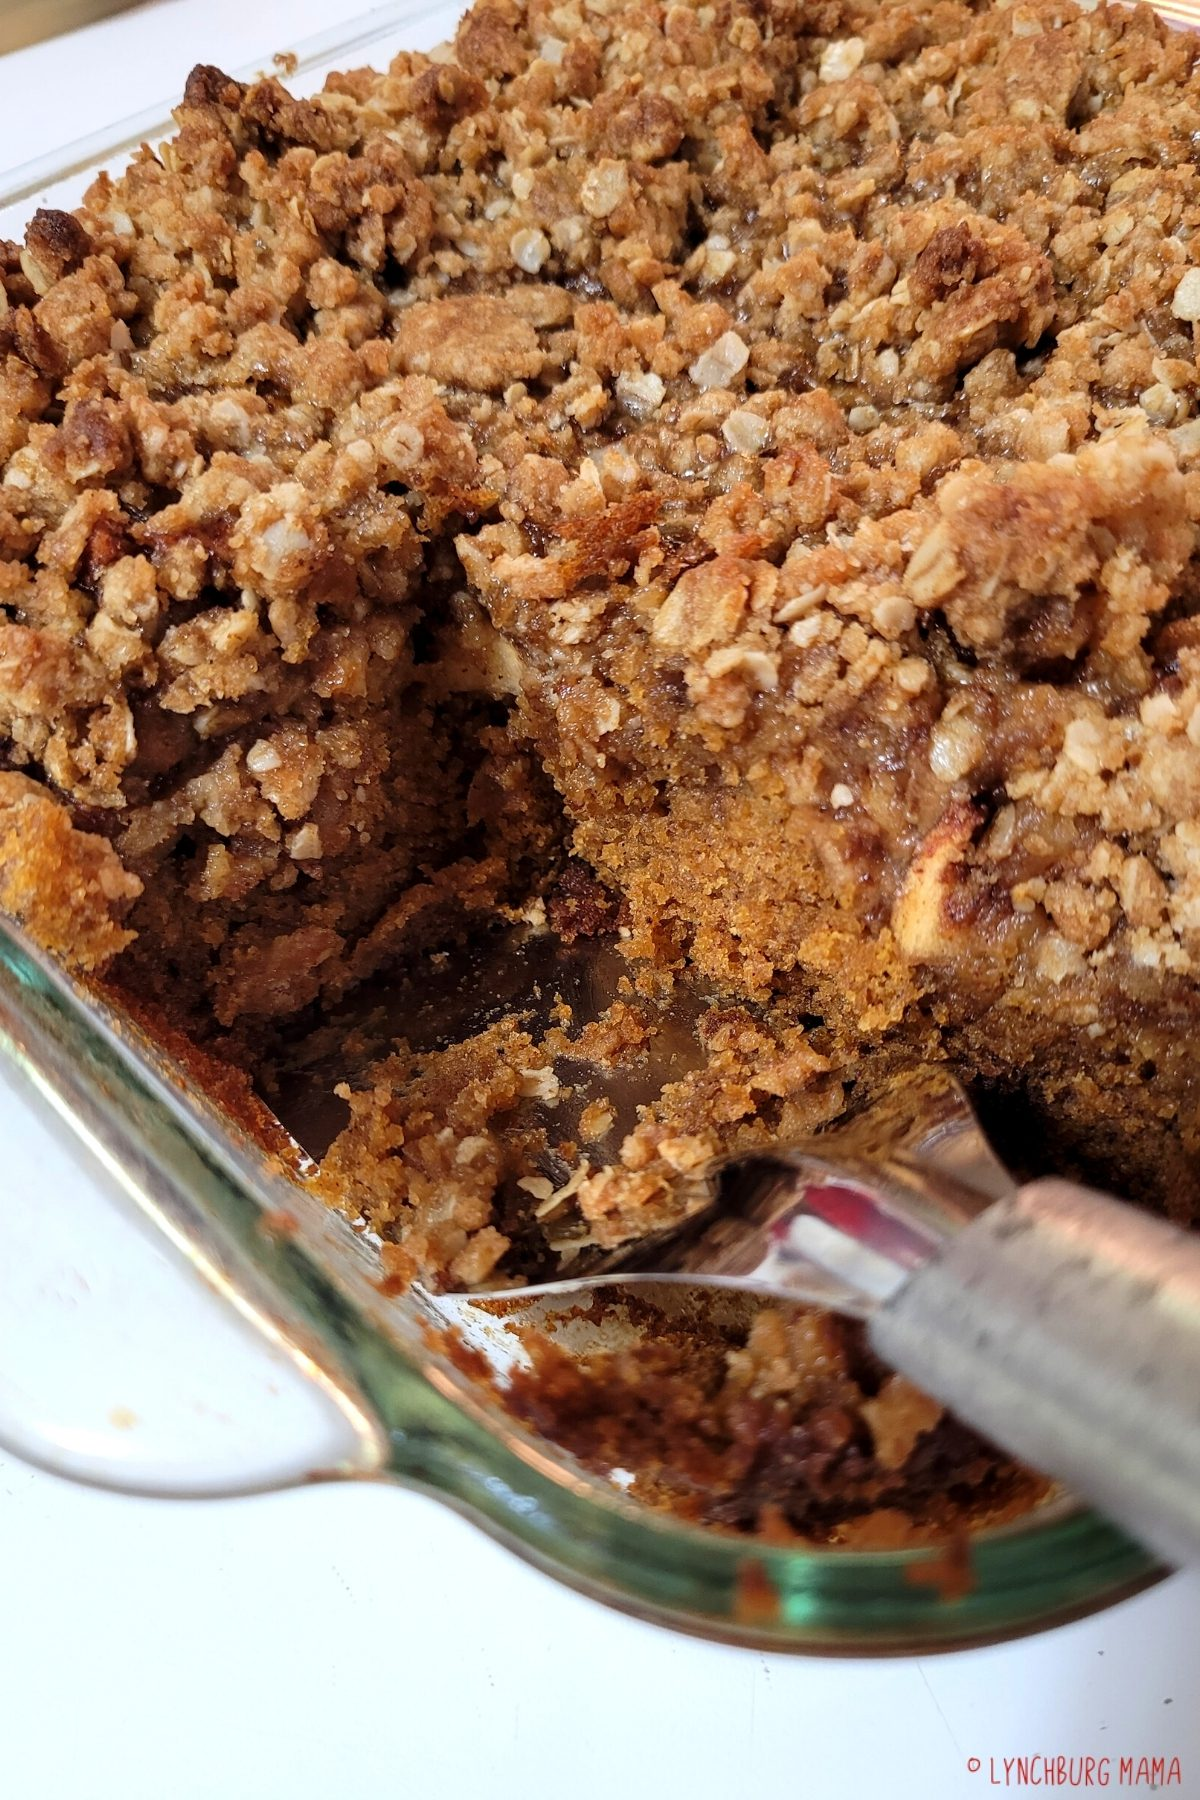 Scooping out some of the Apple Pumpkin Oat Cake